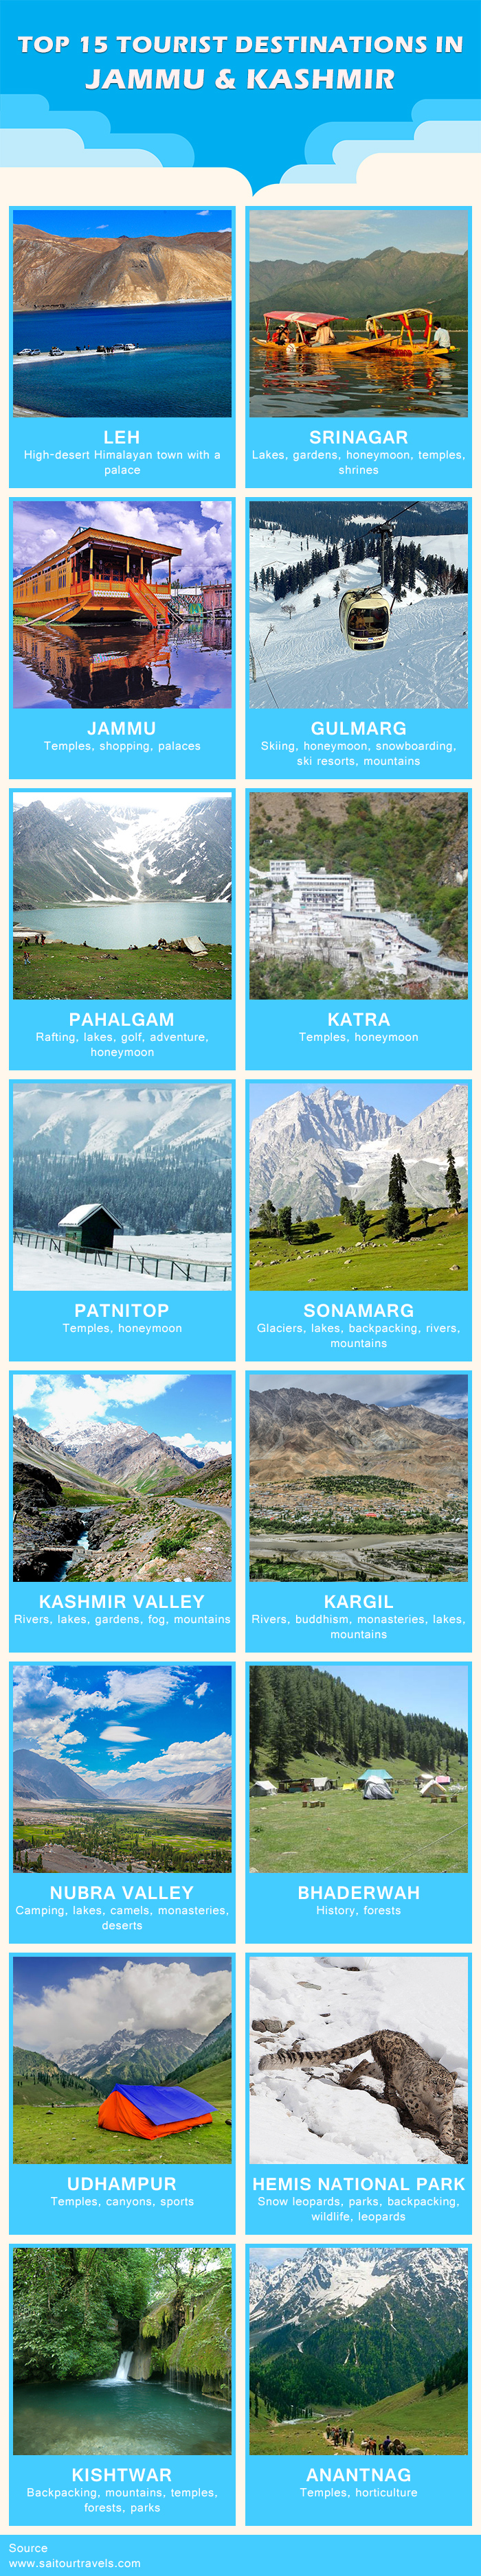 Top 15 Tourist Destinations in Jammu & Kashmir